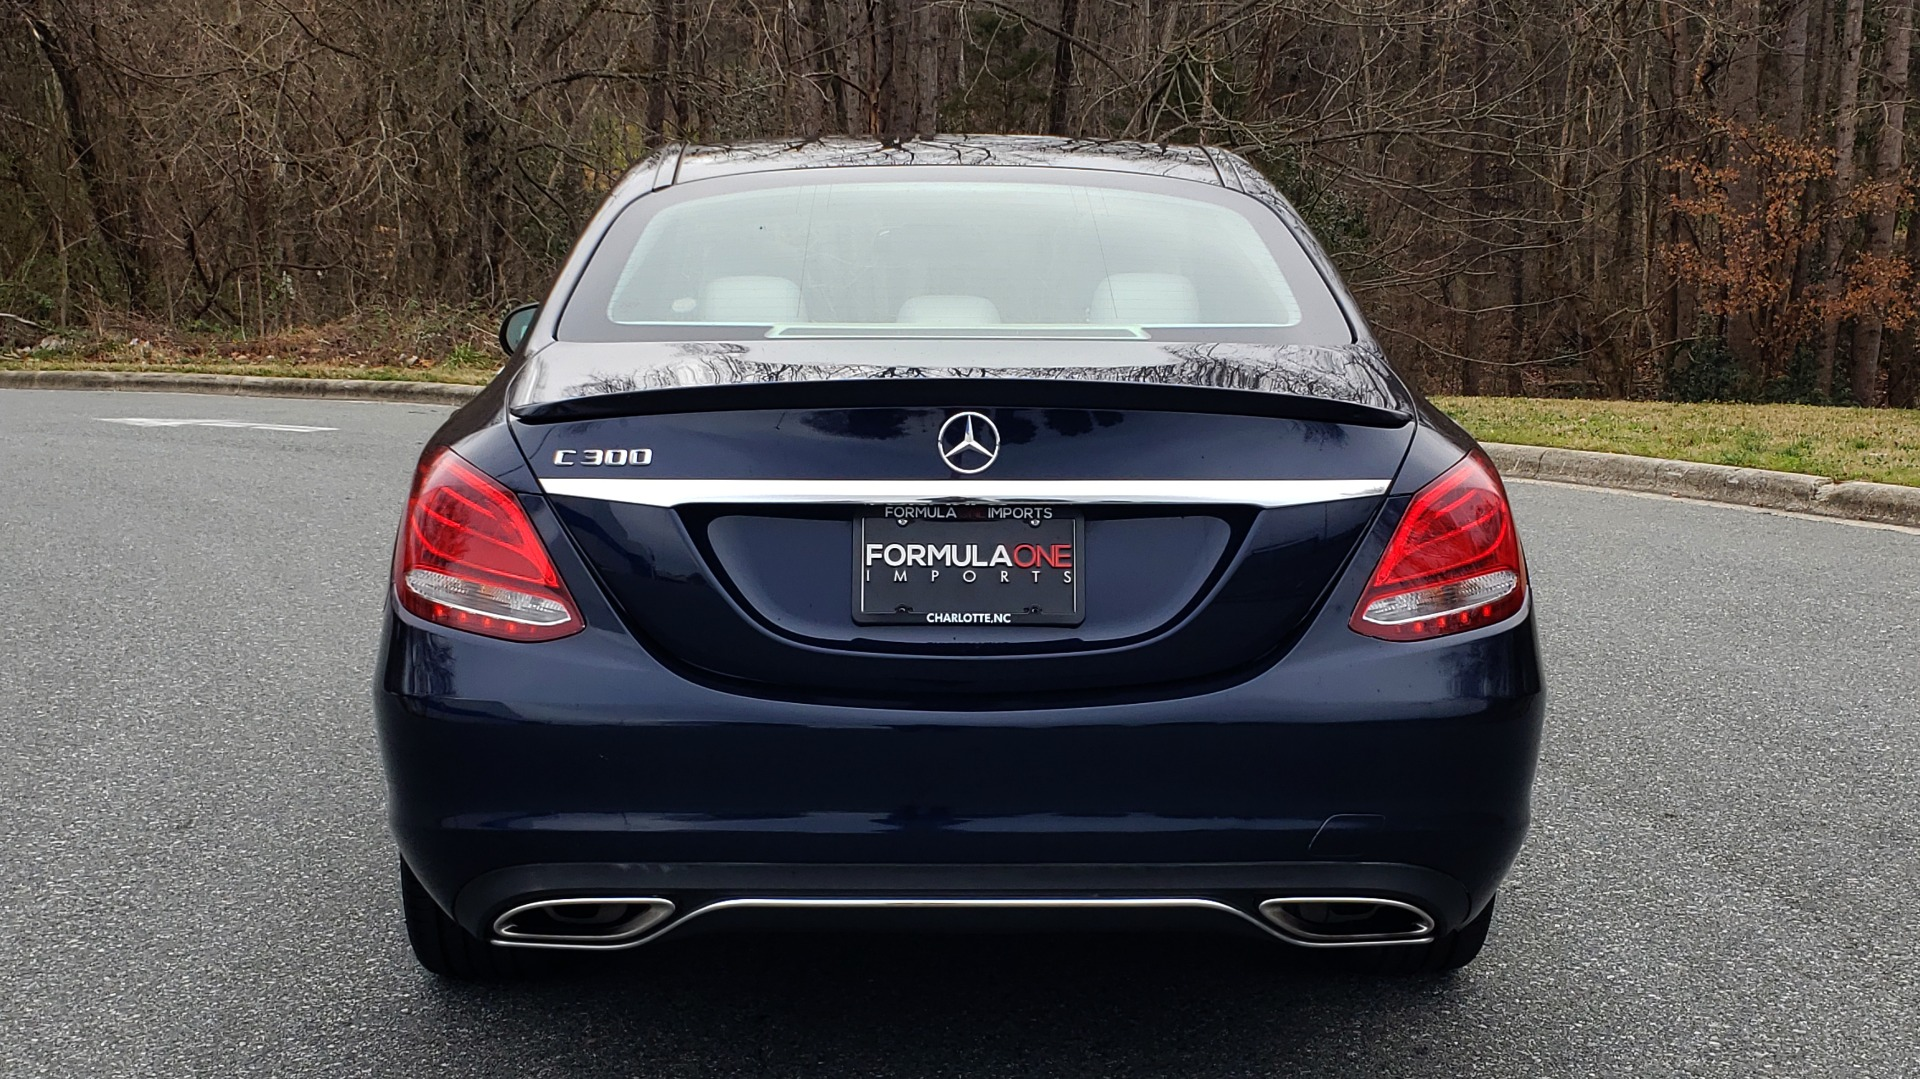 Used 2016 Mercedes-Benz C-CLASS C 300 / PREM PKG / PANO-ROOF / BSA / HTD STS / REARVIEW for sale Sold at Formula Imports in Charlotte NC 28227 26